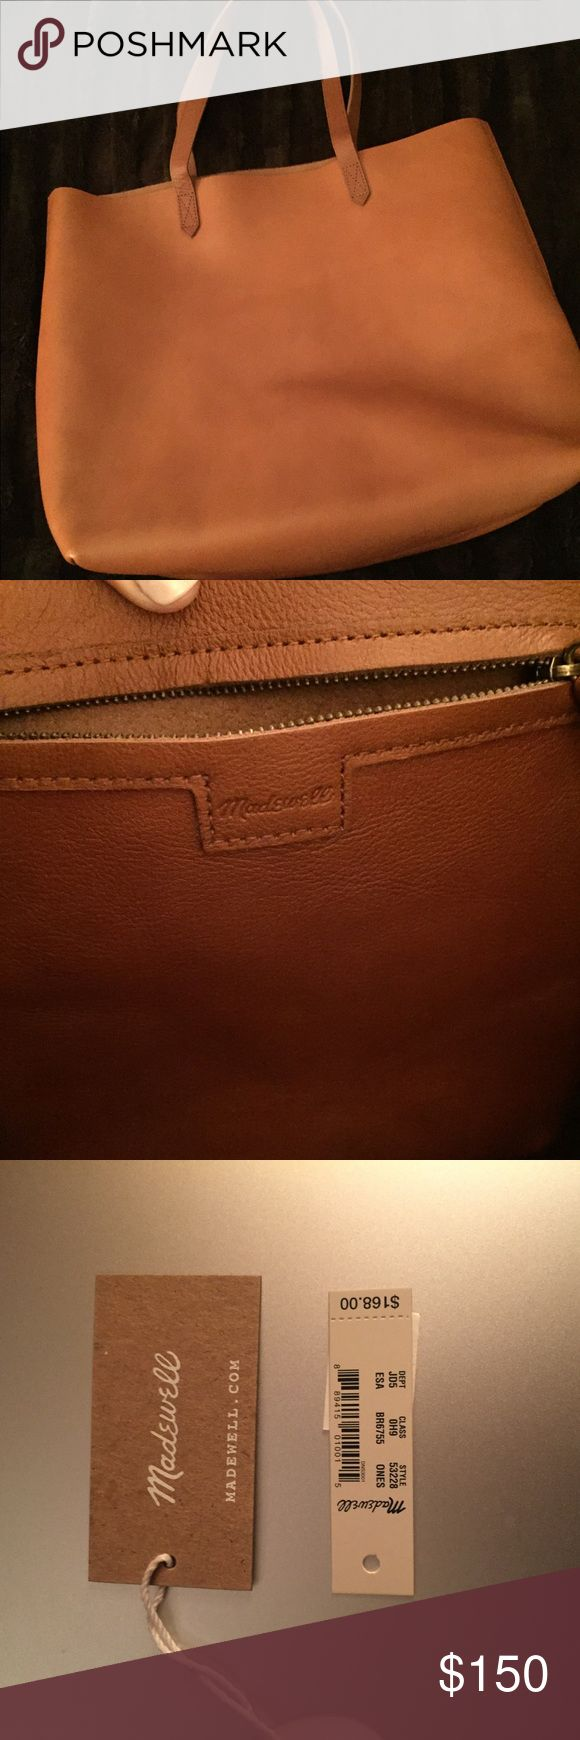 """Madewell """"The Transport"""" Leather Tote Genuine Leather all purpose tote. Huge storage compartment, sturdy straps. 14""""W x 14""""H x 6""""D. 8"""" strap drop. 1.5lbs. Genuine Leather. Just purchased and only worn once. English Saddle color. Tags included. Madewell Bags Totes"""